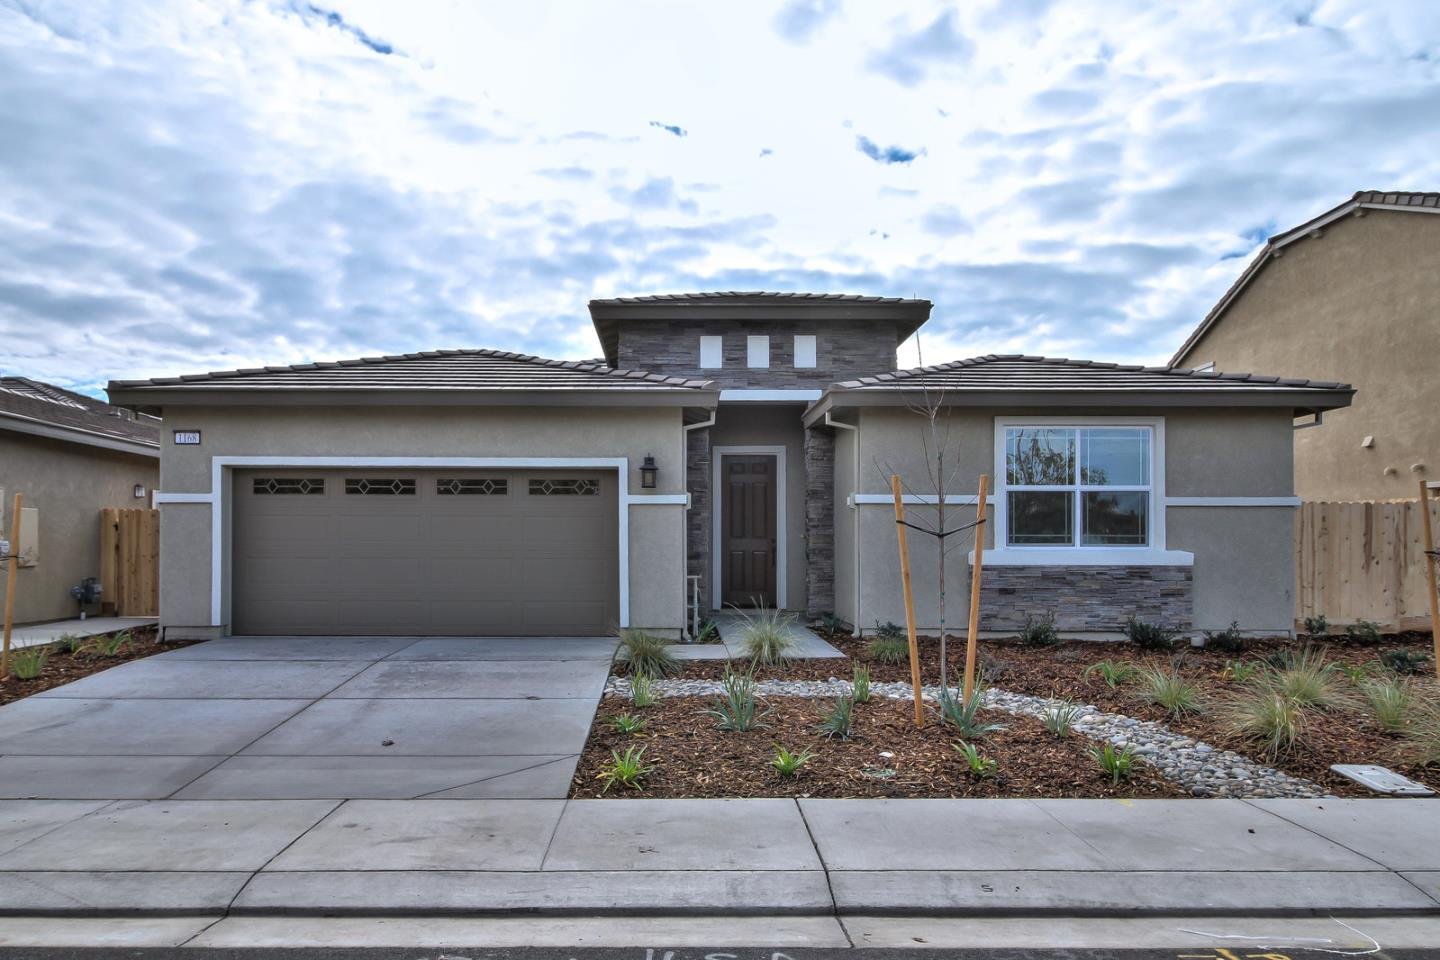 Image for 1168 Silva Way, <br>Manteca 95337